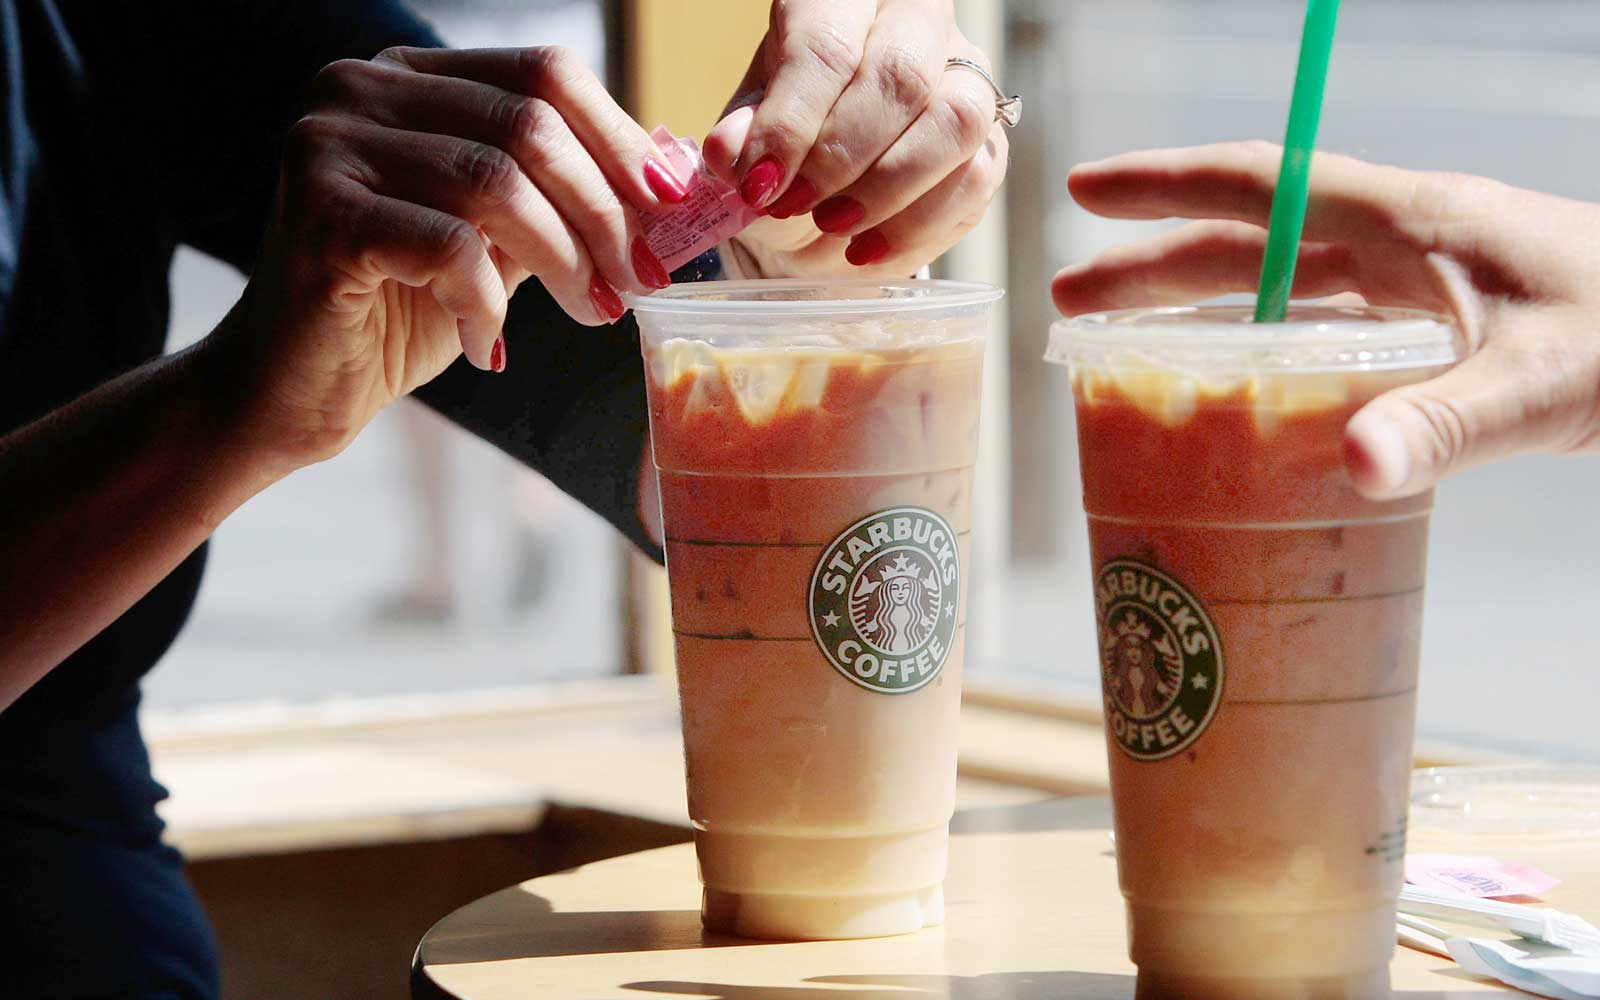 Starbucks is Testing Out Coffee Ice Cubes So You Can Have Coffee in Your Coffee